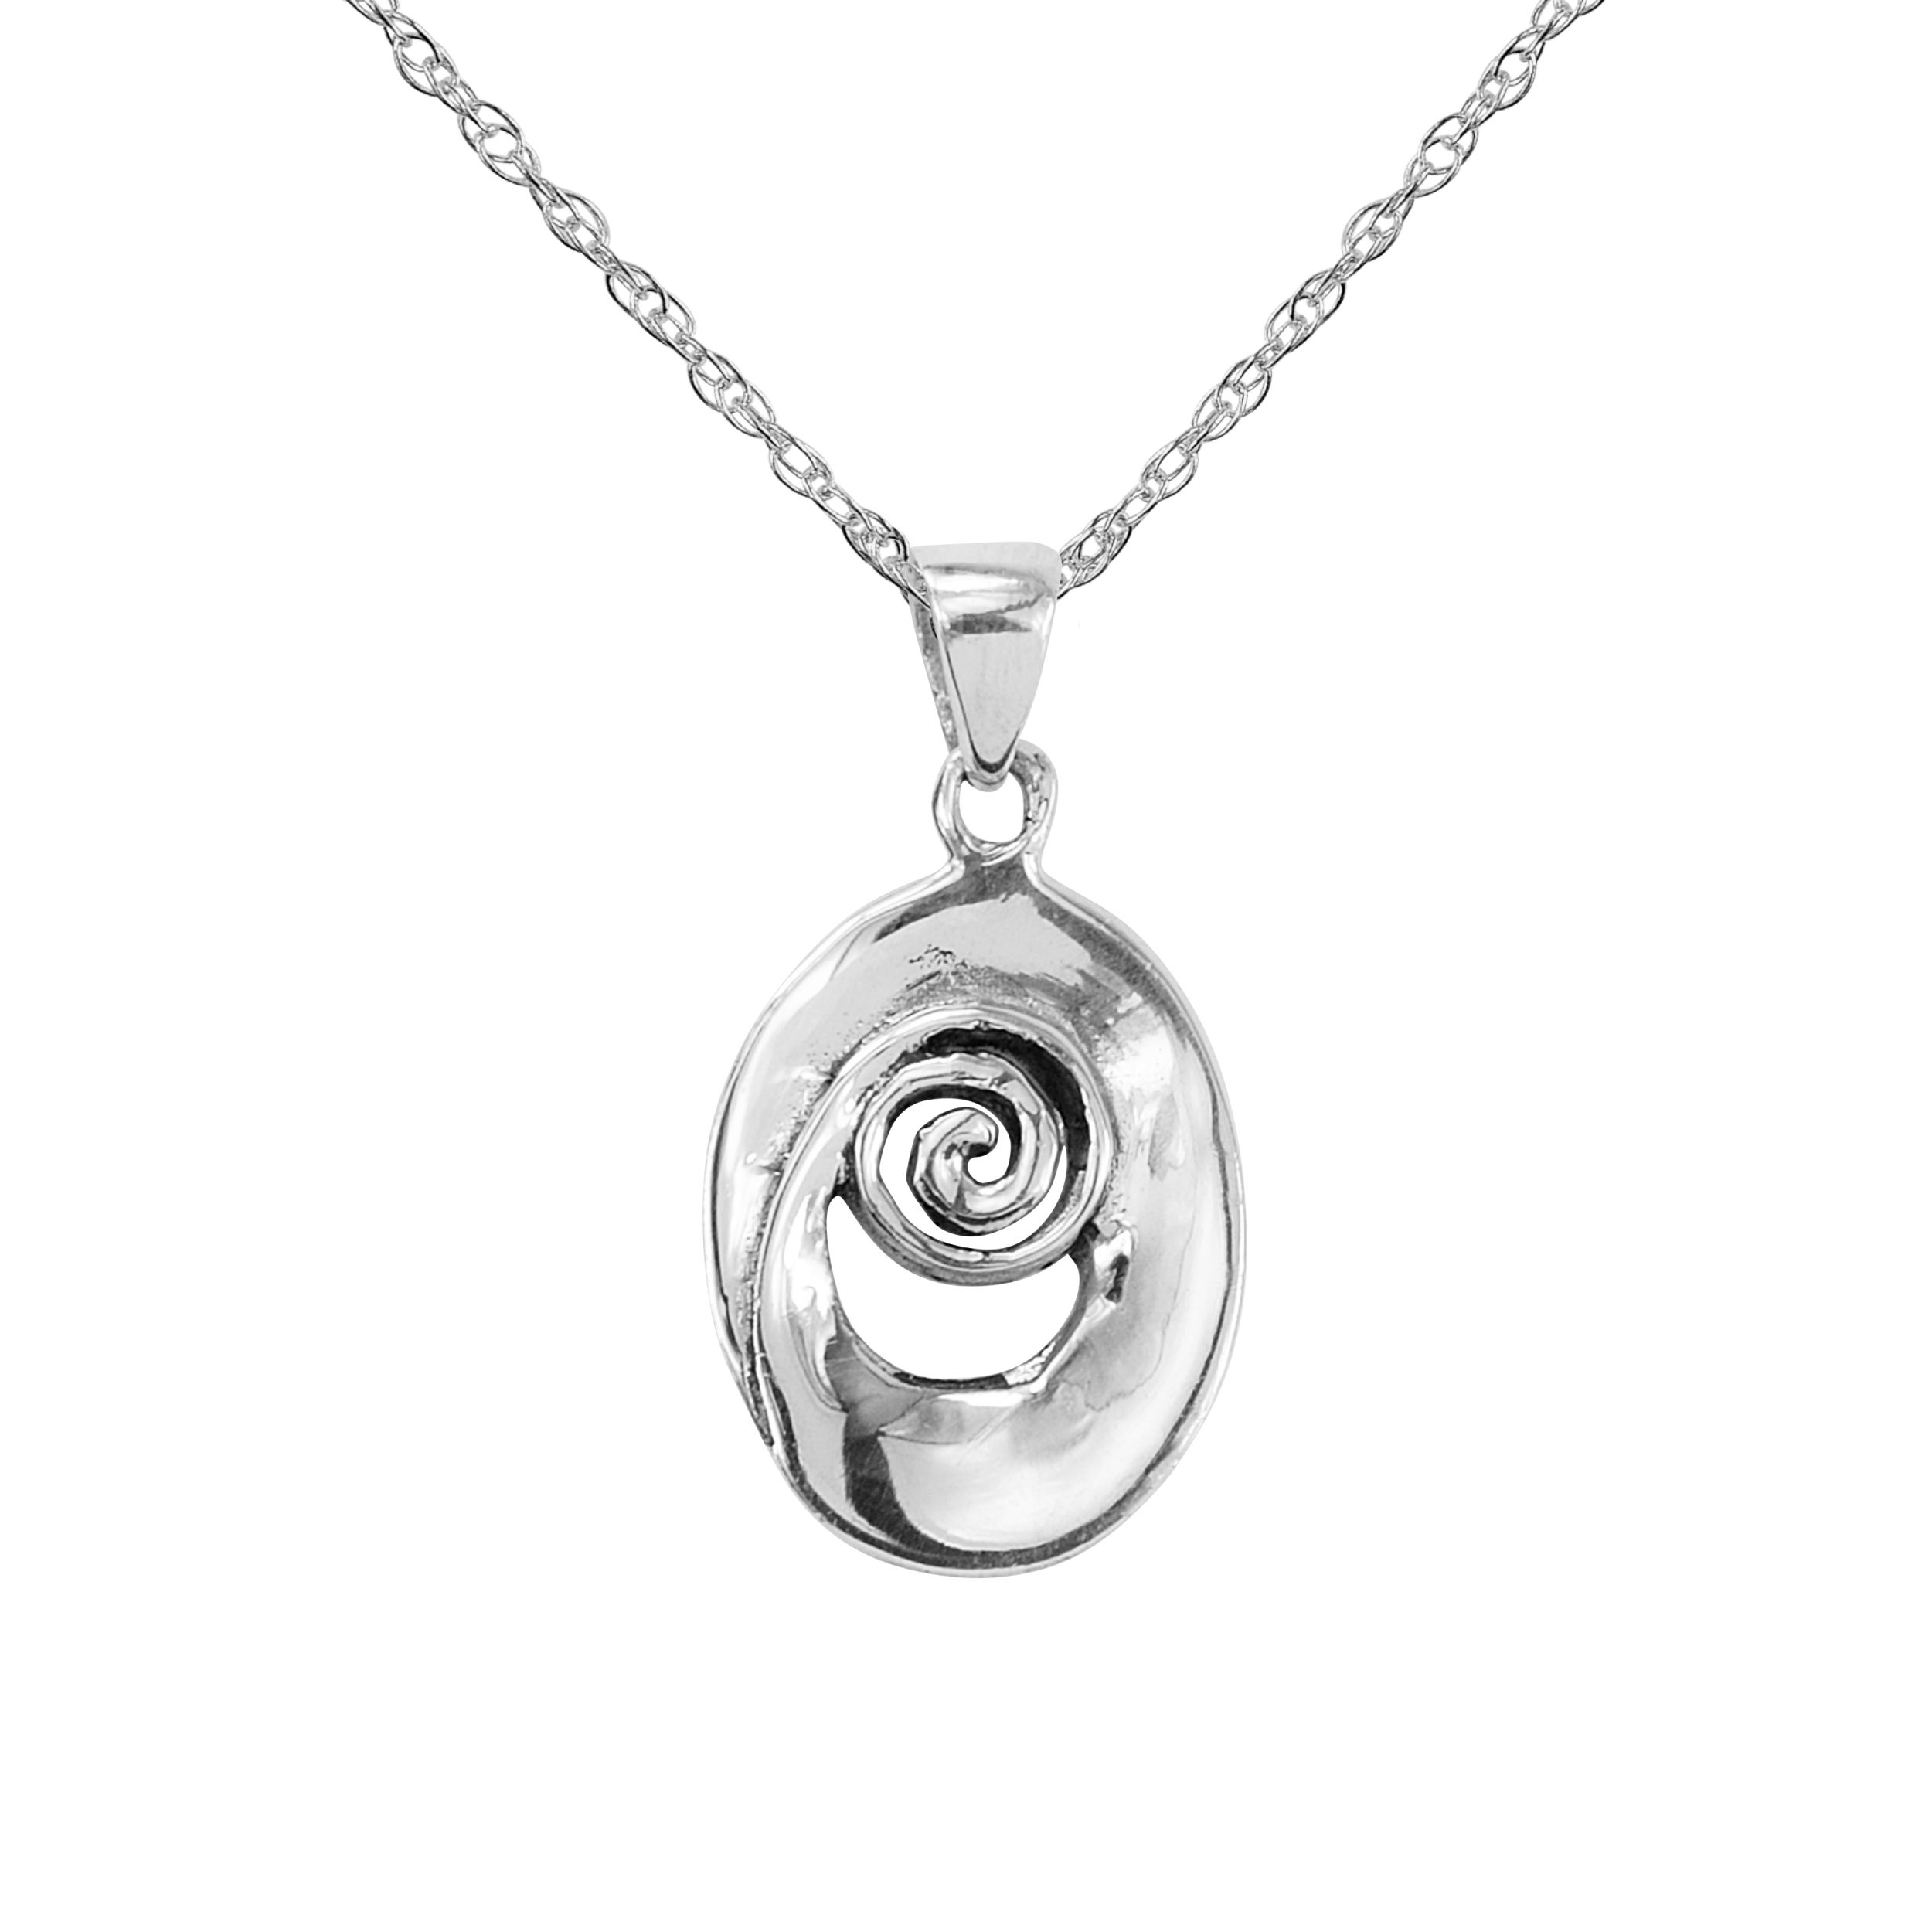 necklace spiral pendant product closeup